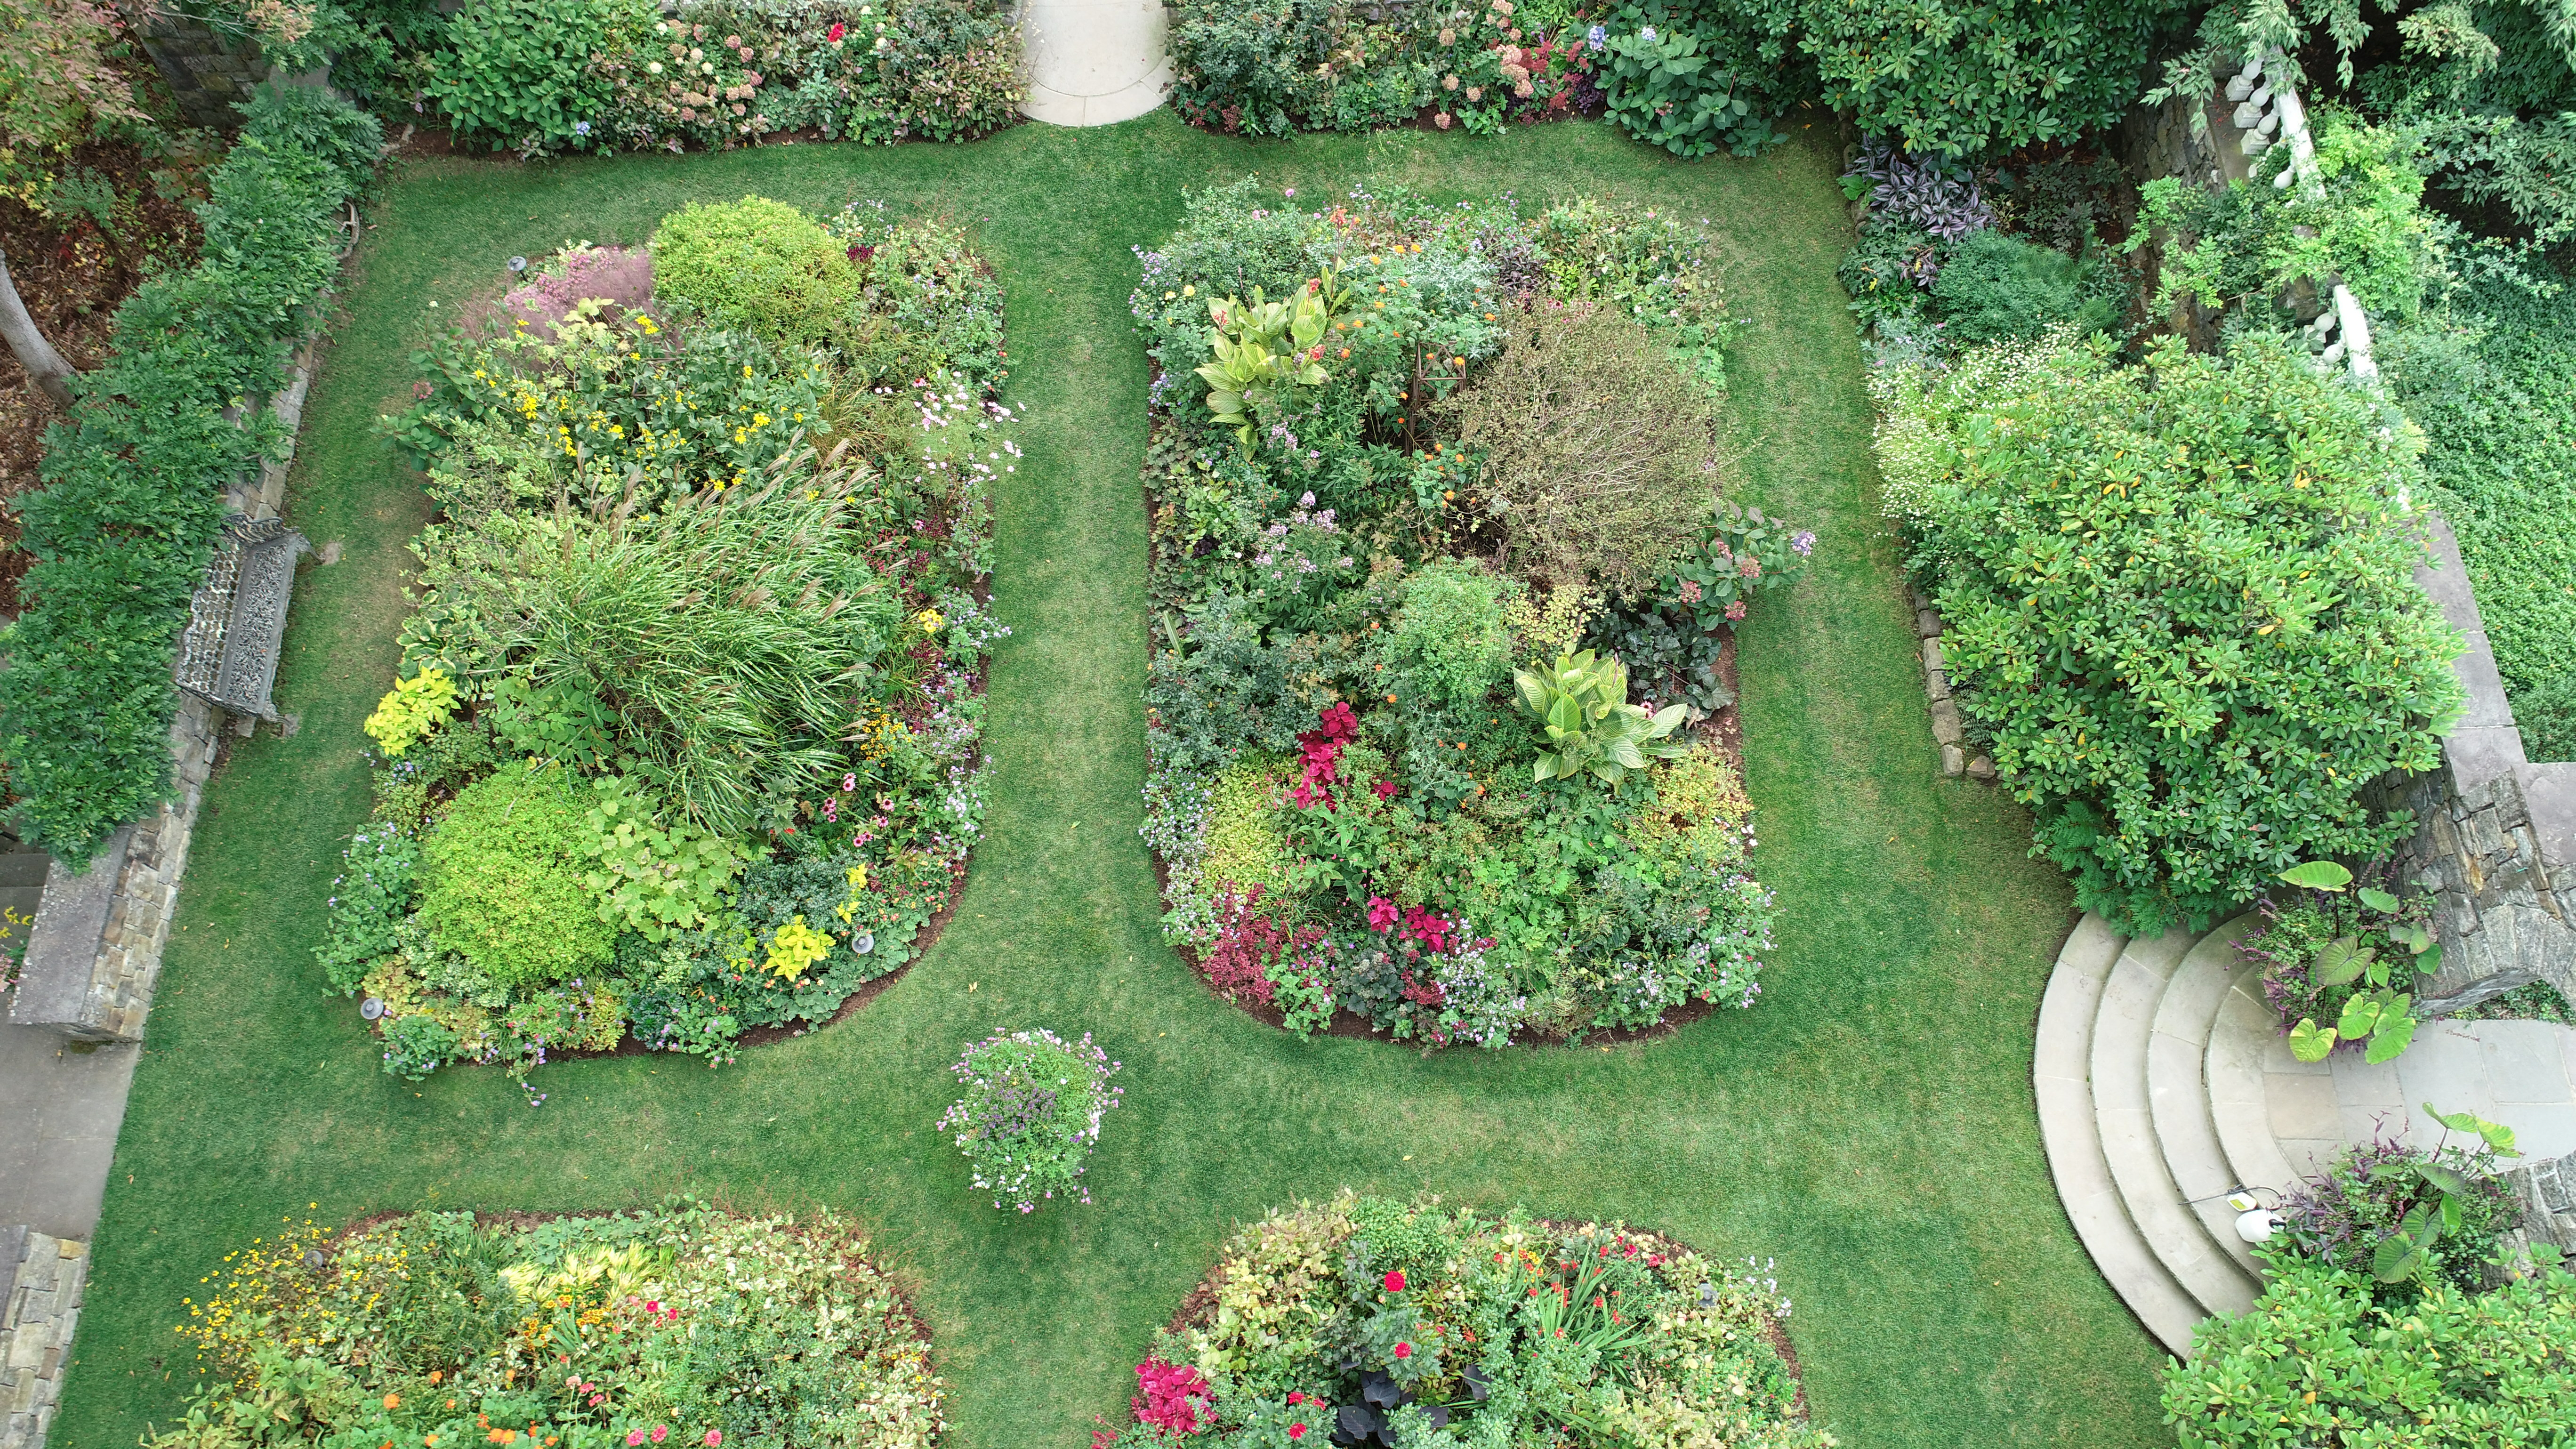 Drone views of gardens can reveal plant density as well as under or unutilized space. Can you spot areas in these gardens that might be 'opportunity' spots for next year? THG AVIATION